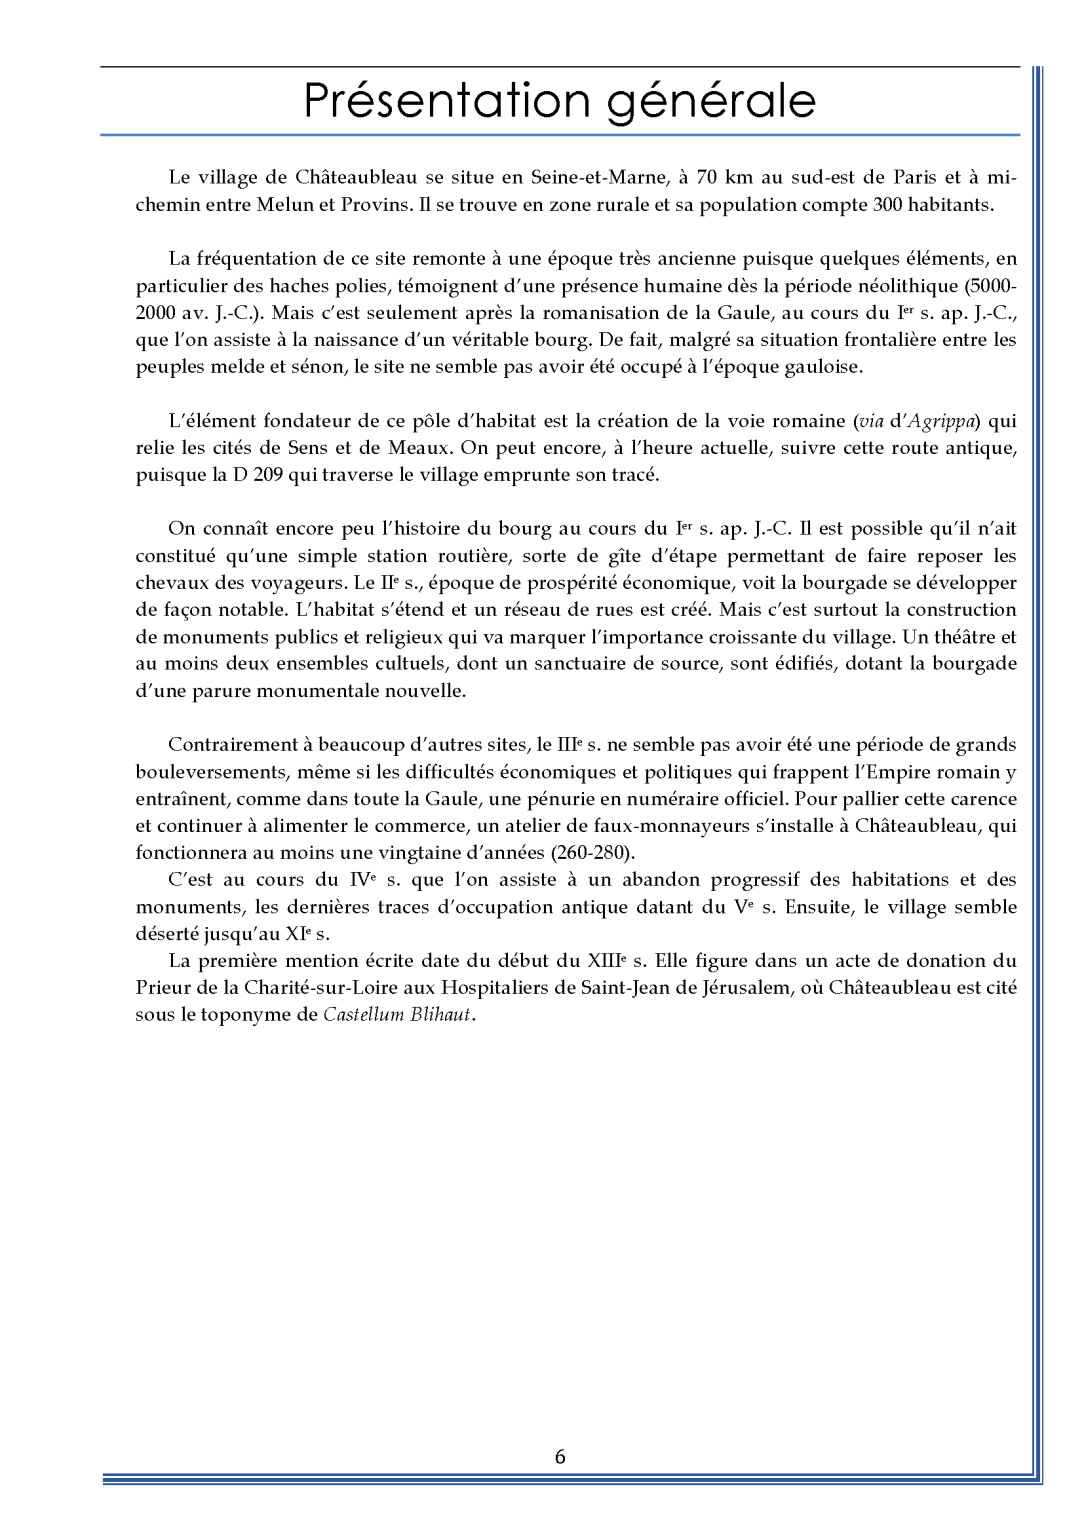 CATALOGUE DES ATELIERS 2015_2016_Page_06.png